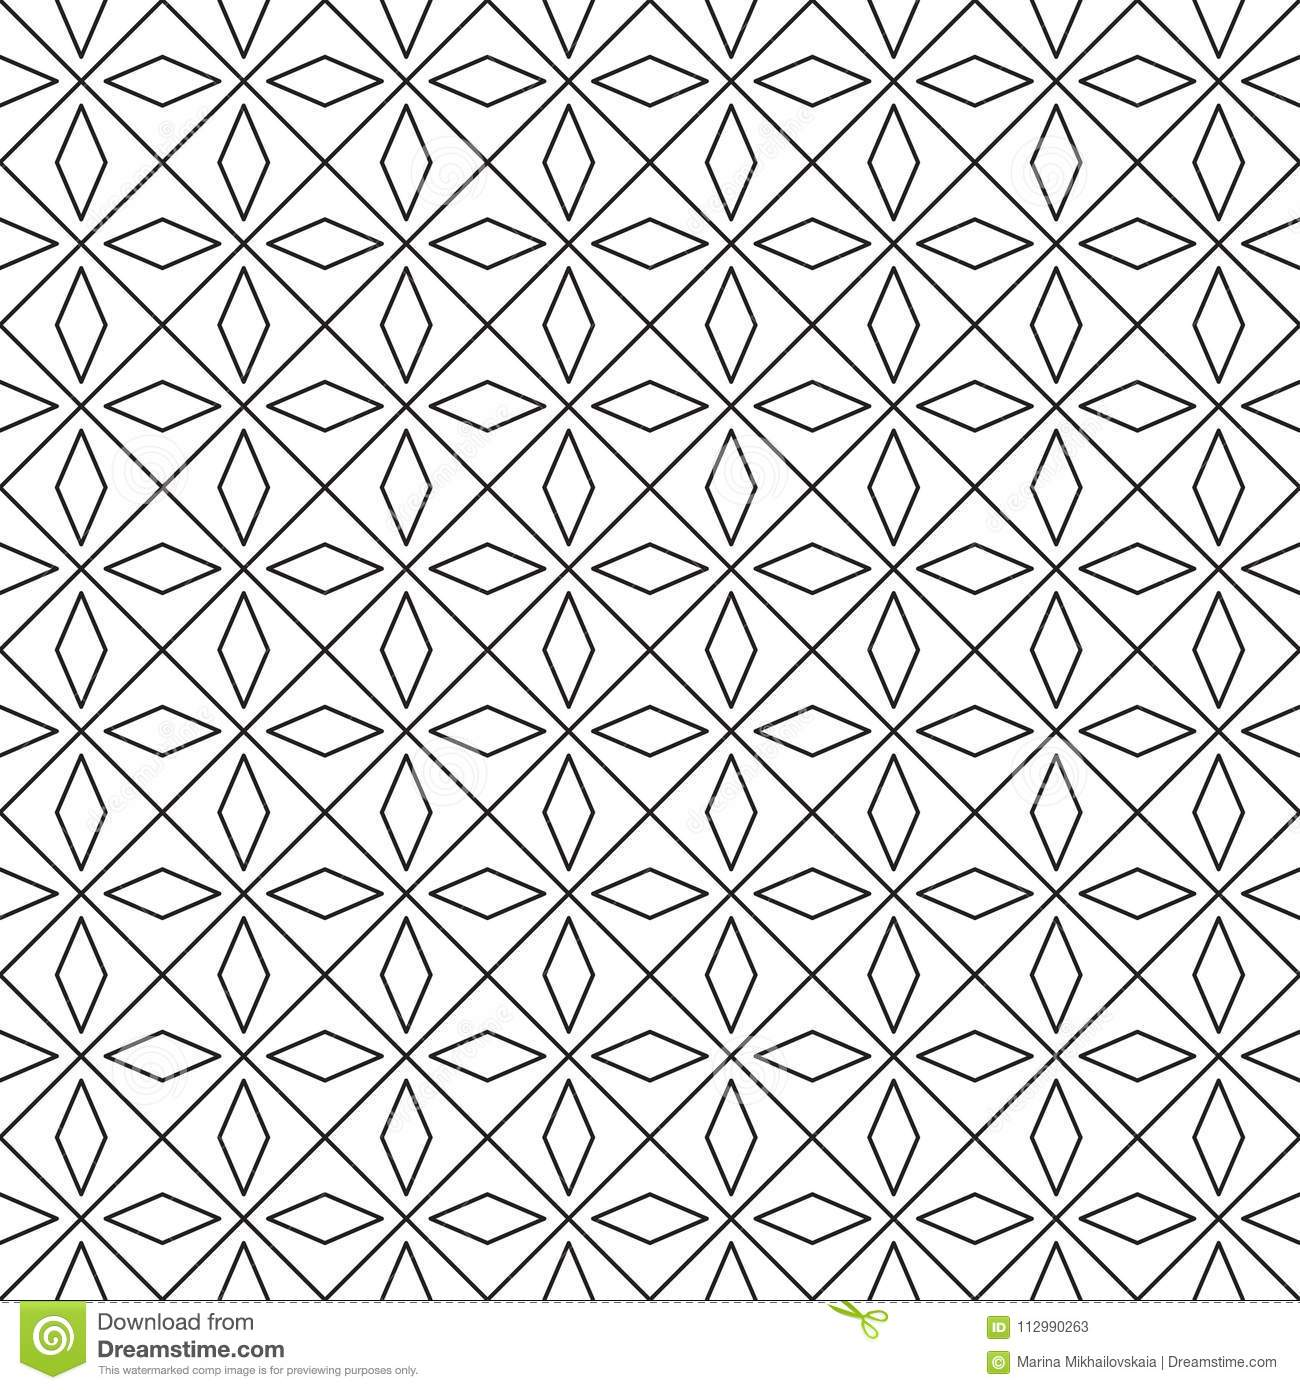 Vector geometric pattern from squares and rhombuses on a white background.